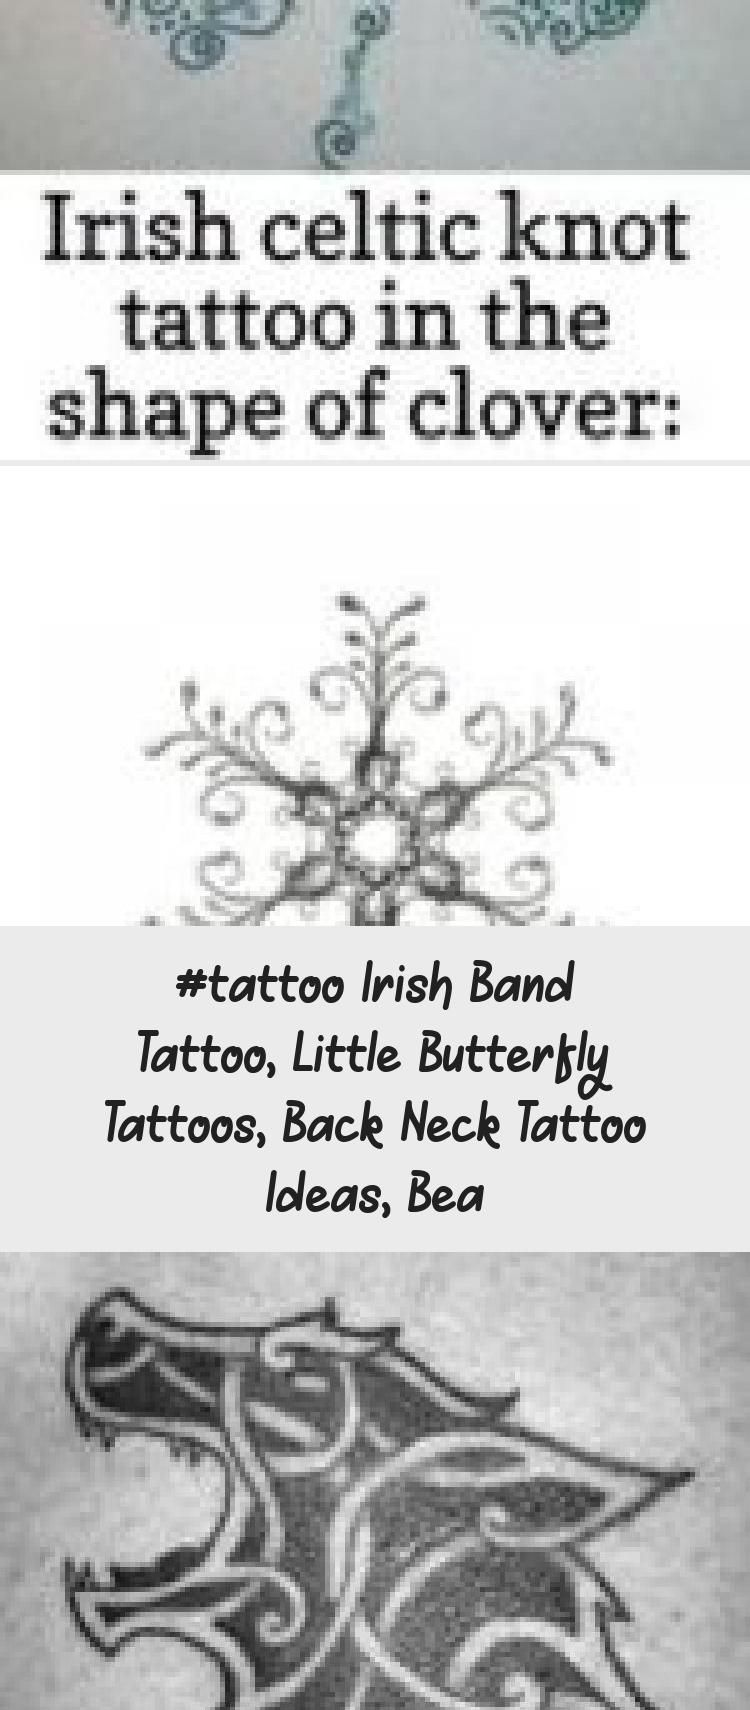 Photo of #Tattoo irish band tattoo, little butterfly tattoos, back neck tattoo ideas, bea…